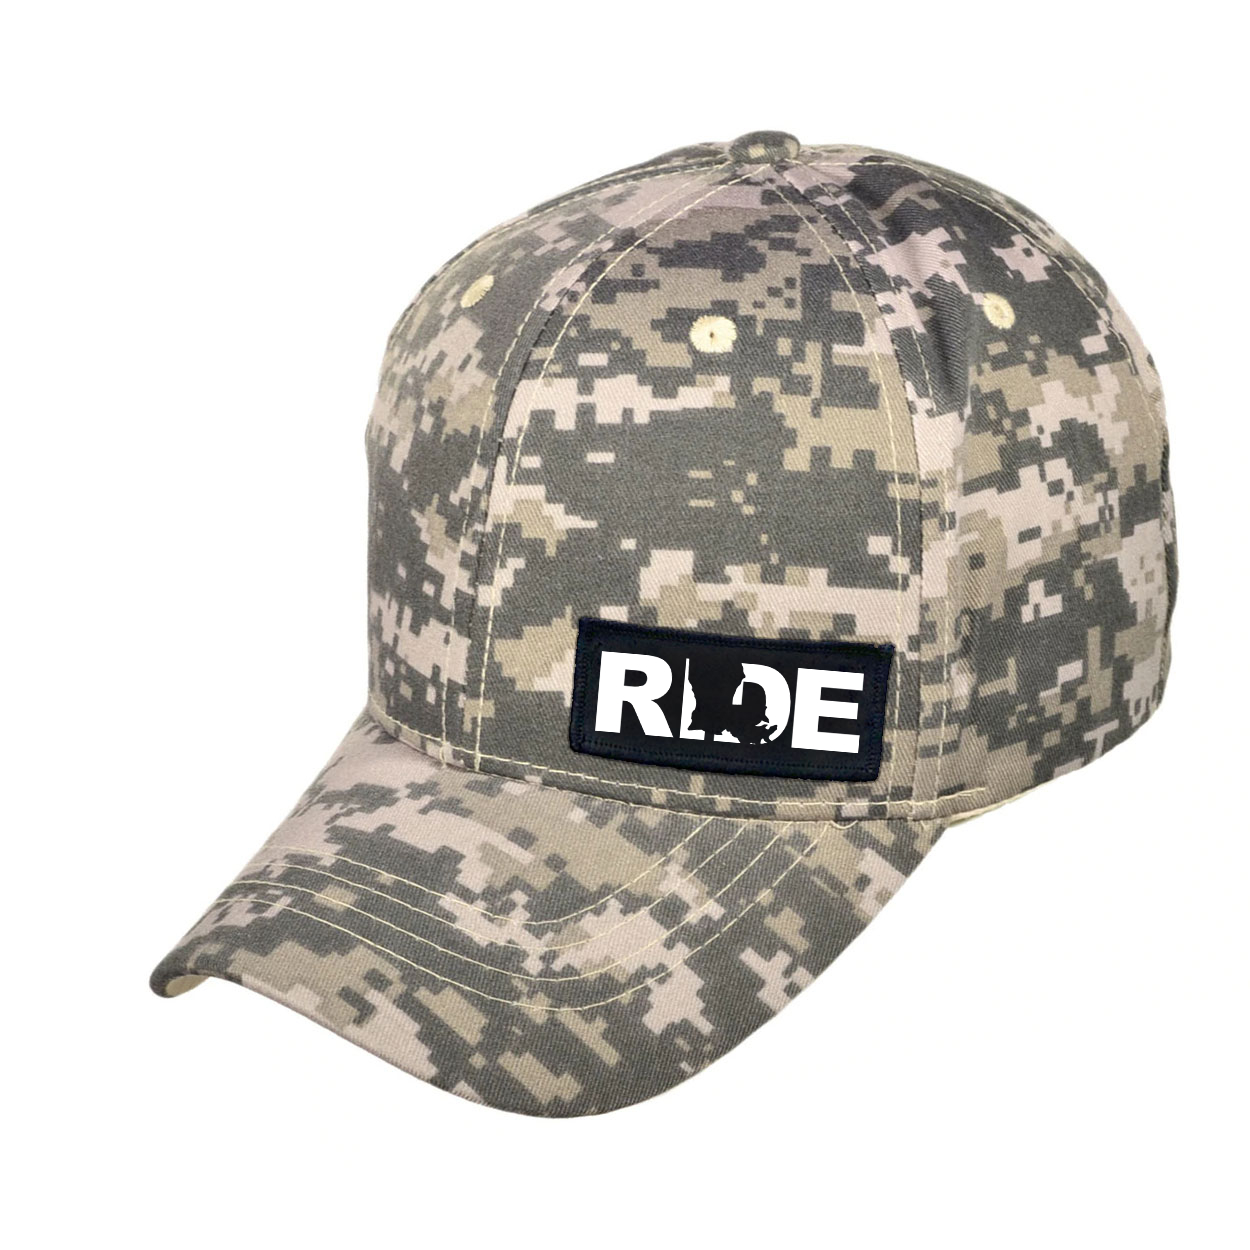 Ride Louisiana Night Out Woven Patch Hat Digital Camo (White Logo)